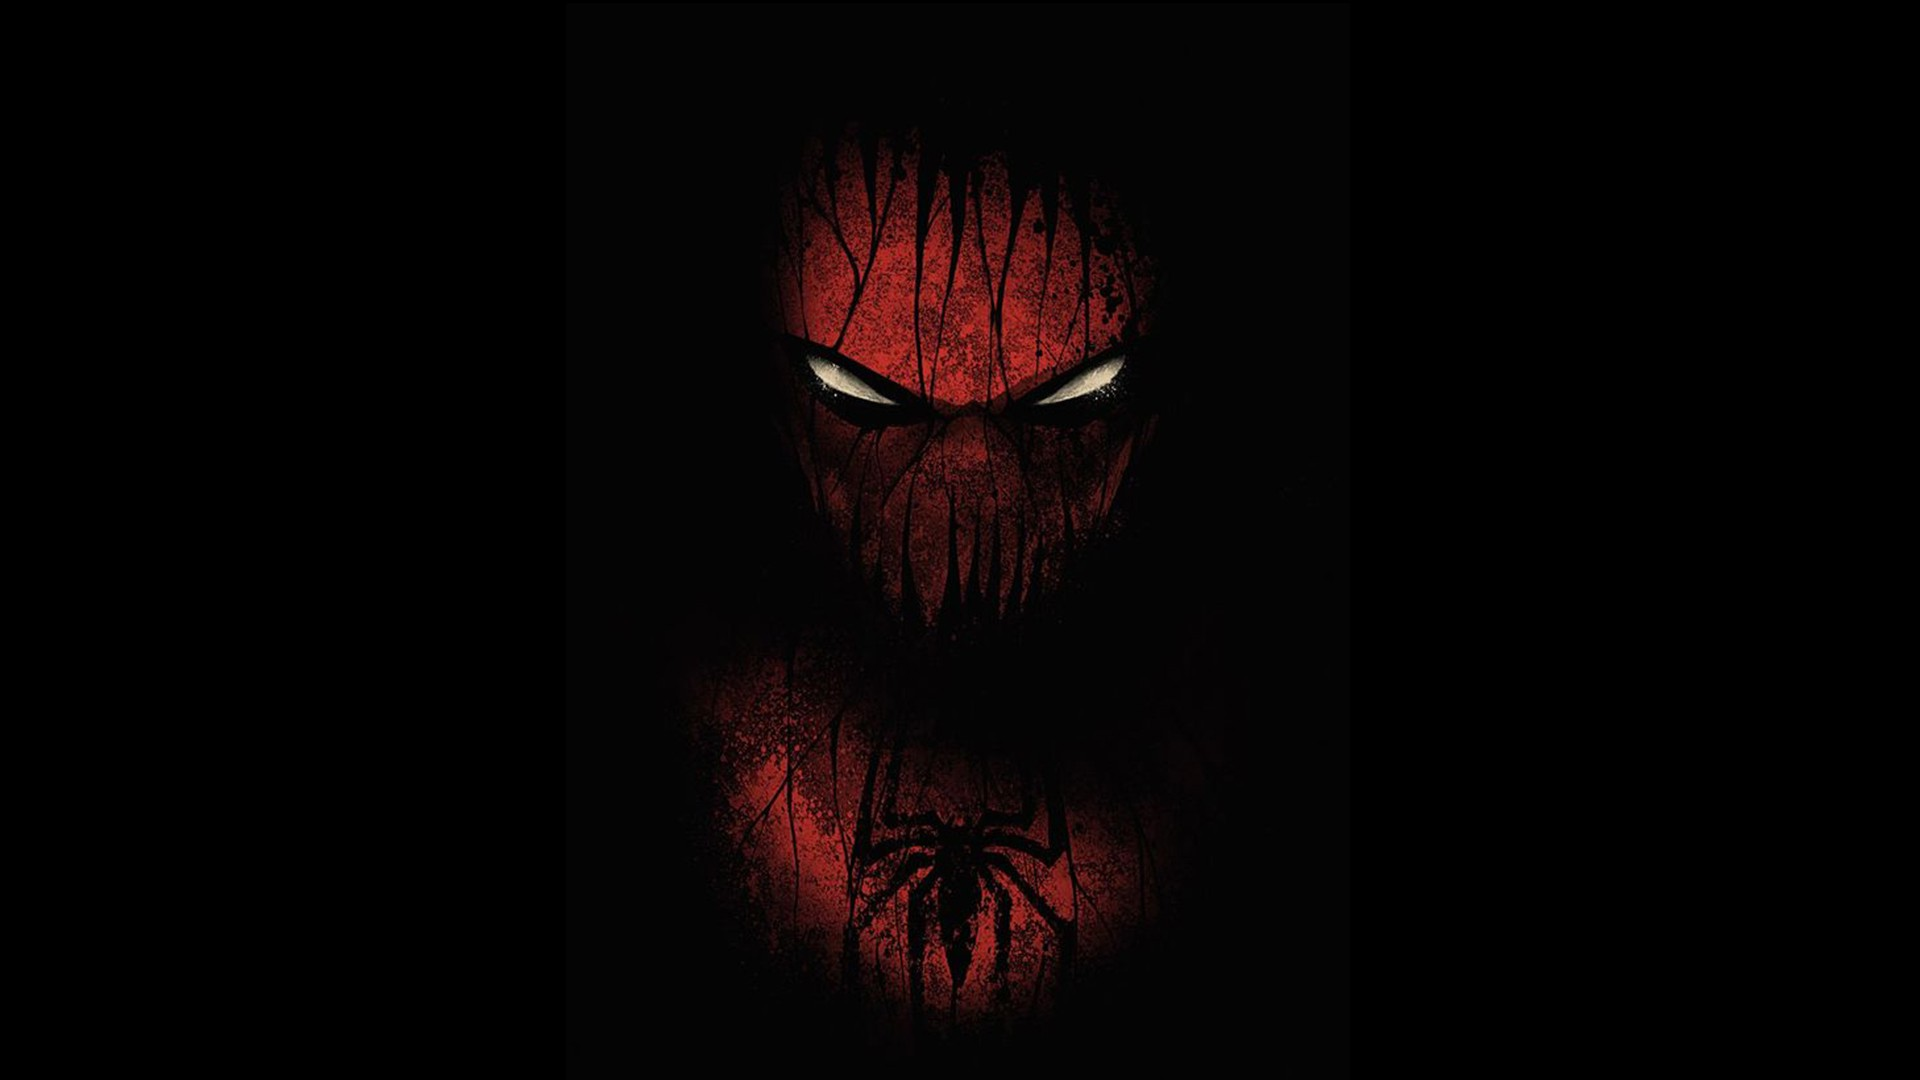 The Amazing Spider Man Wallpaper For Iphone Red Spider Man Marvel Comics Wallpapers Hd Desktop And